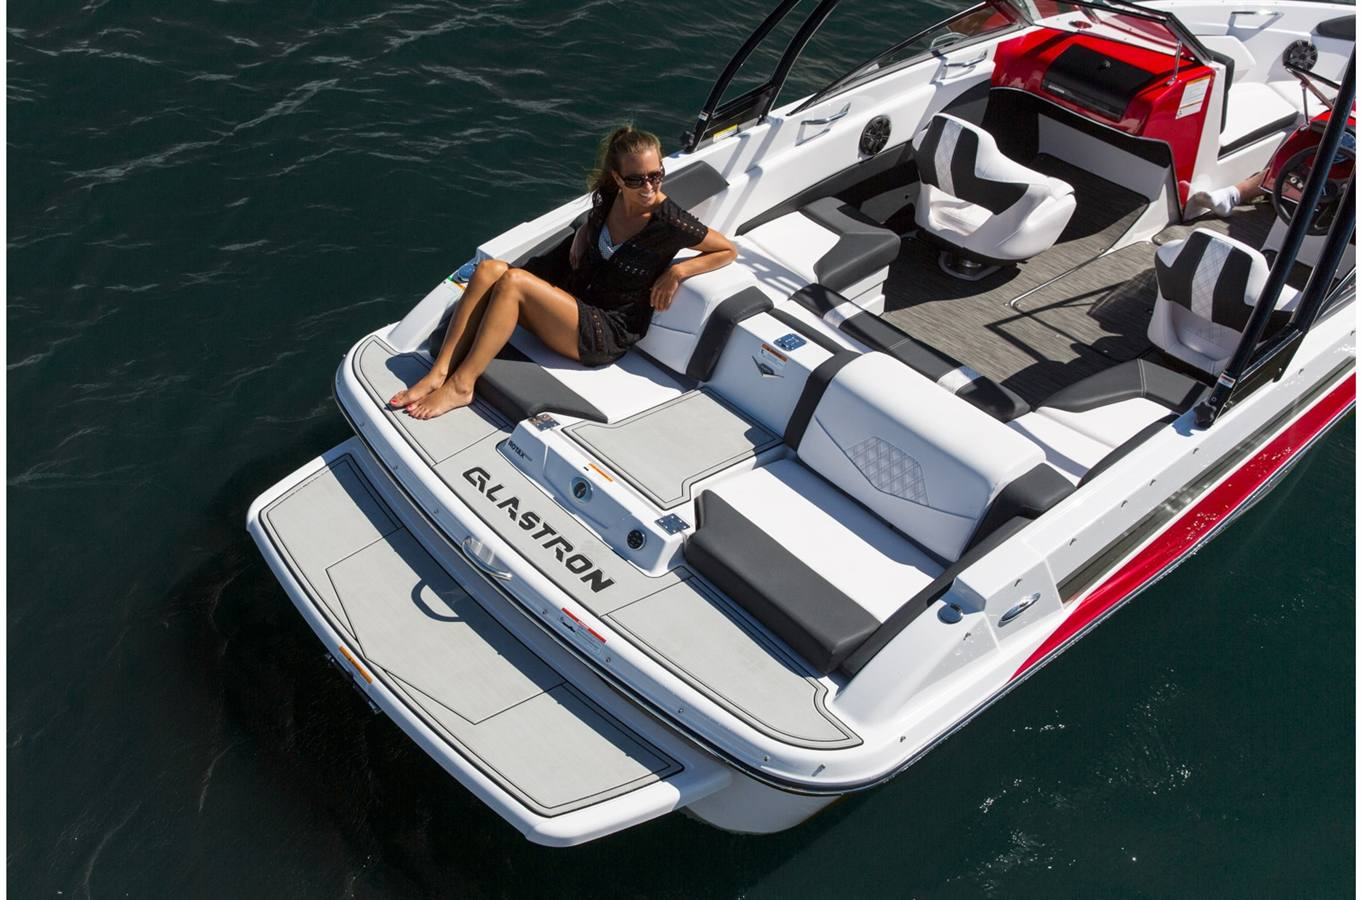 2018 Glastron GT 207 for sale in Carleton Place, ON | John's Marina